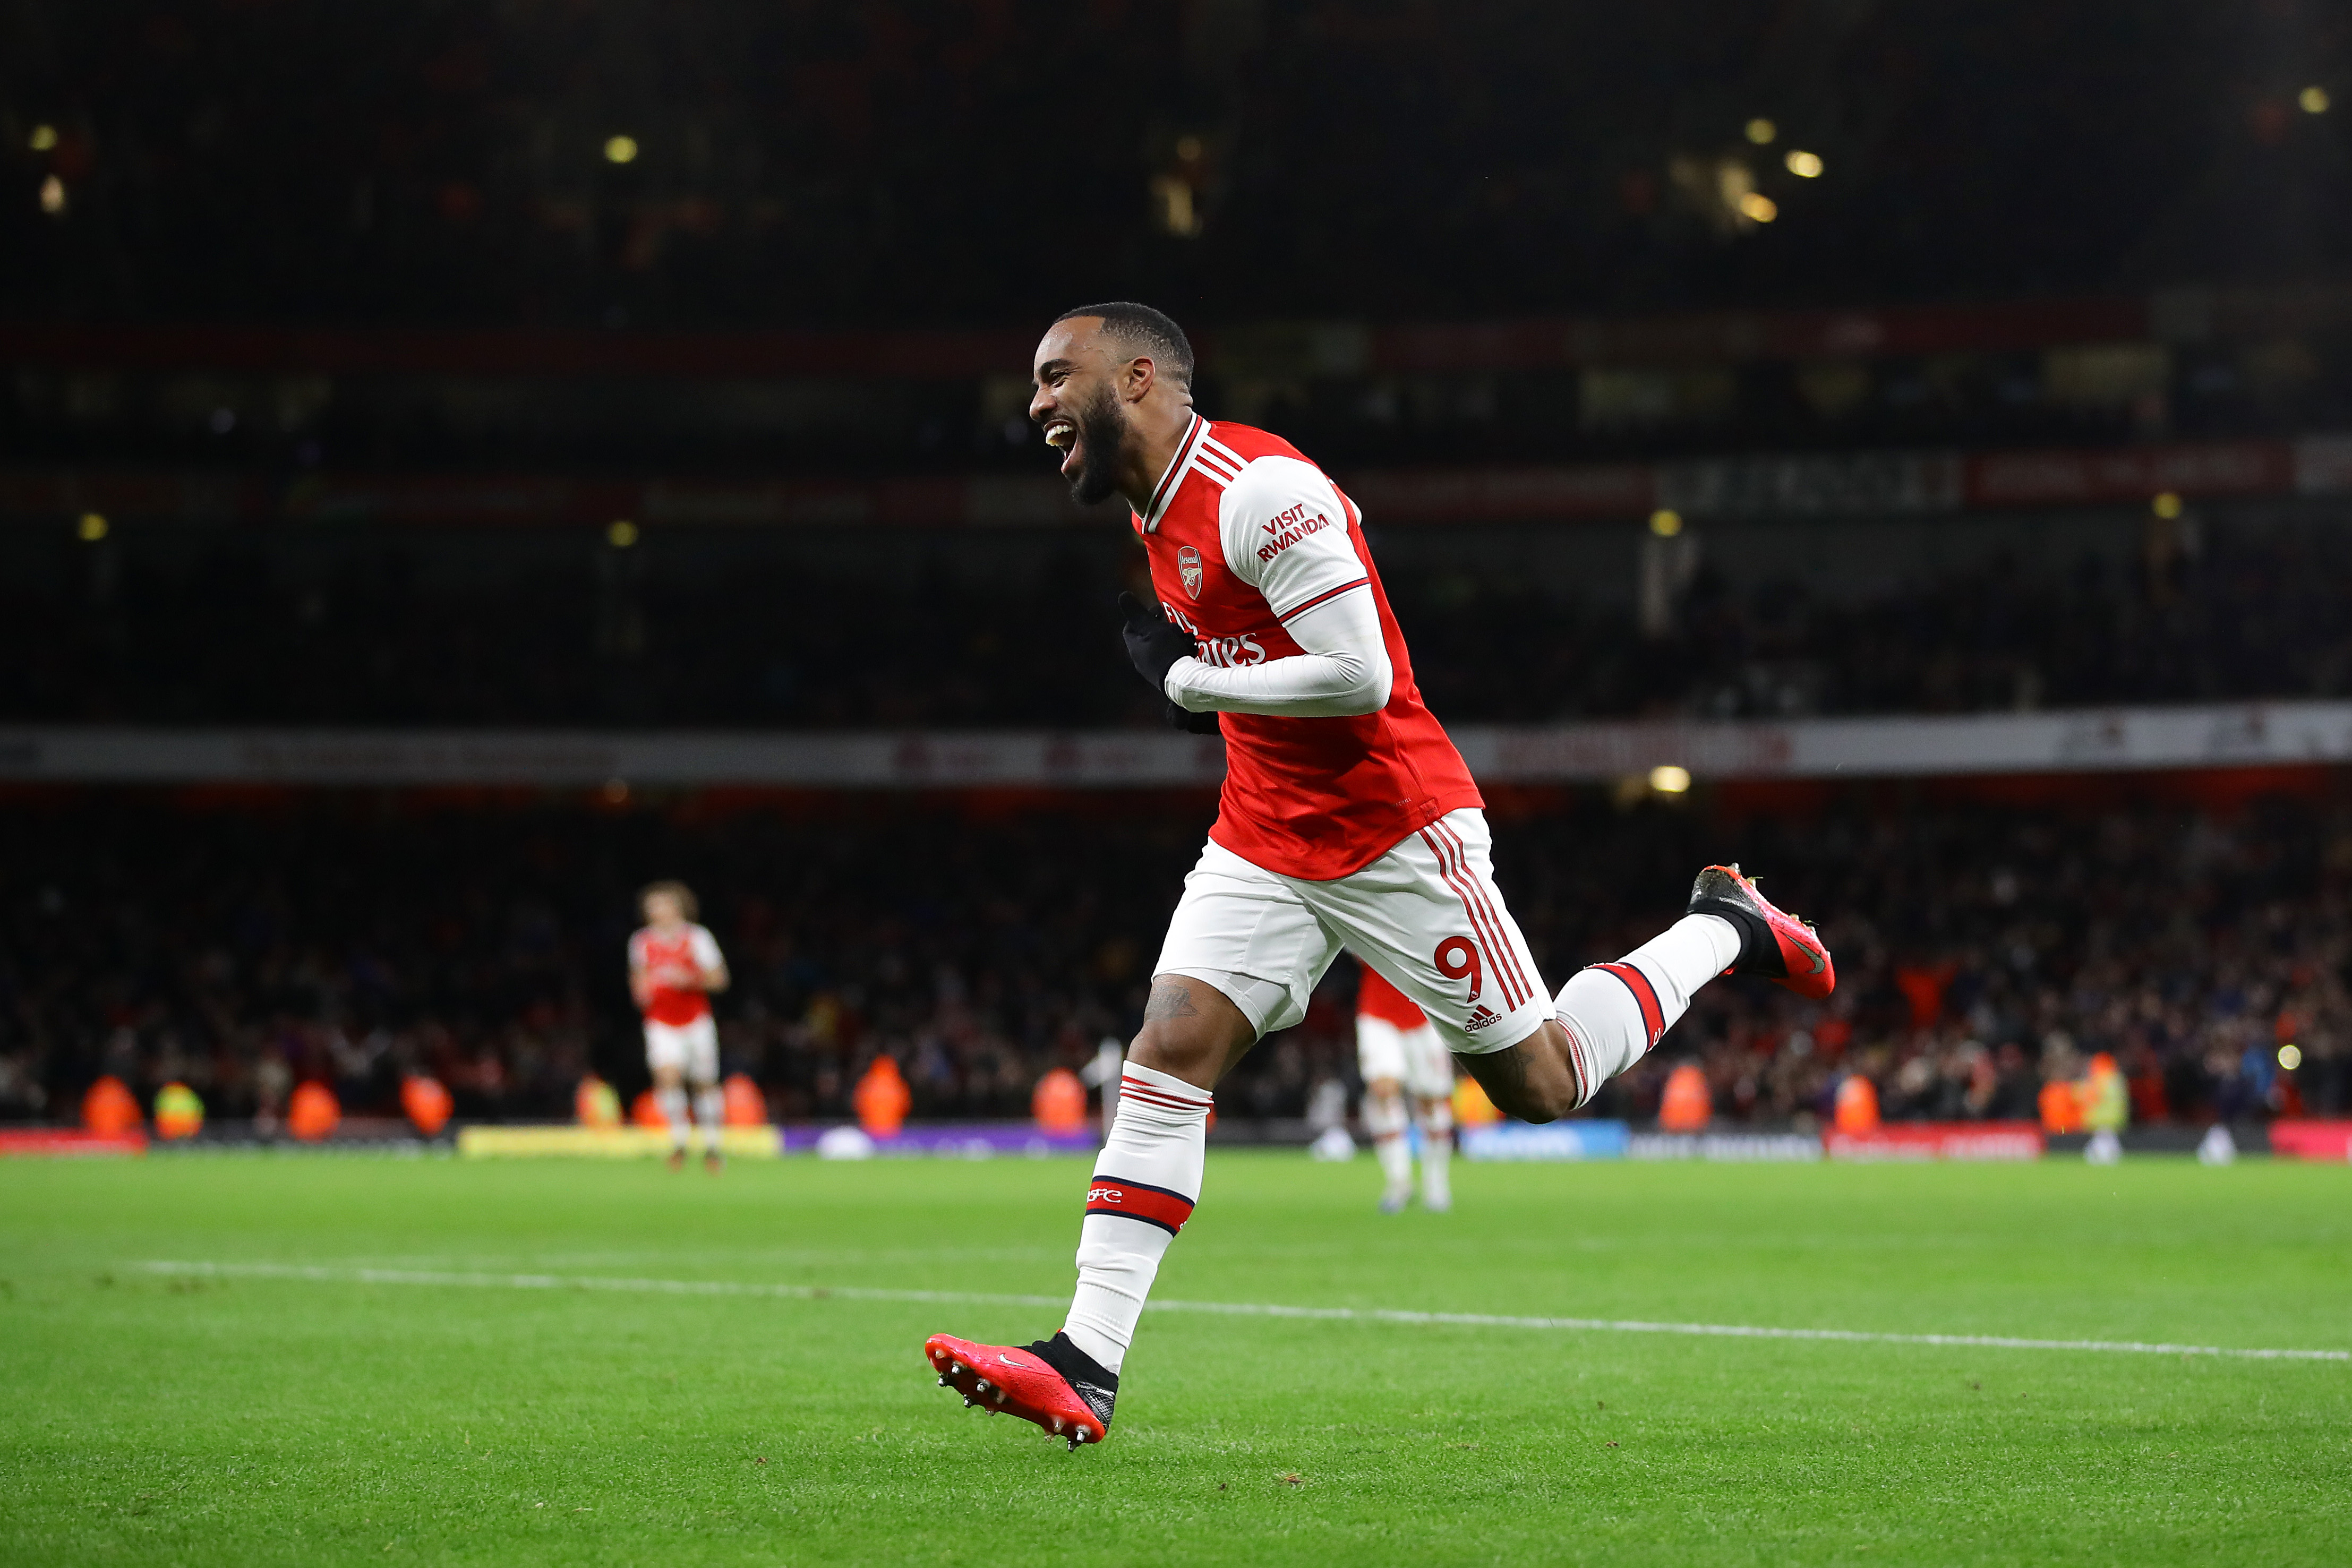 Italian giants AC Milan and Juventus are among the teams keeping a keen eye on Arsenal star Alexander Lacazette as his contract winds down